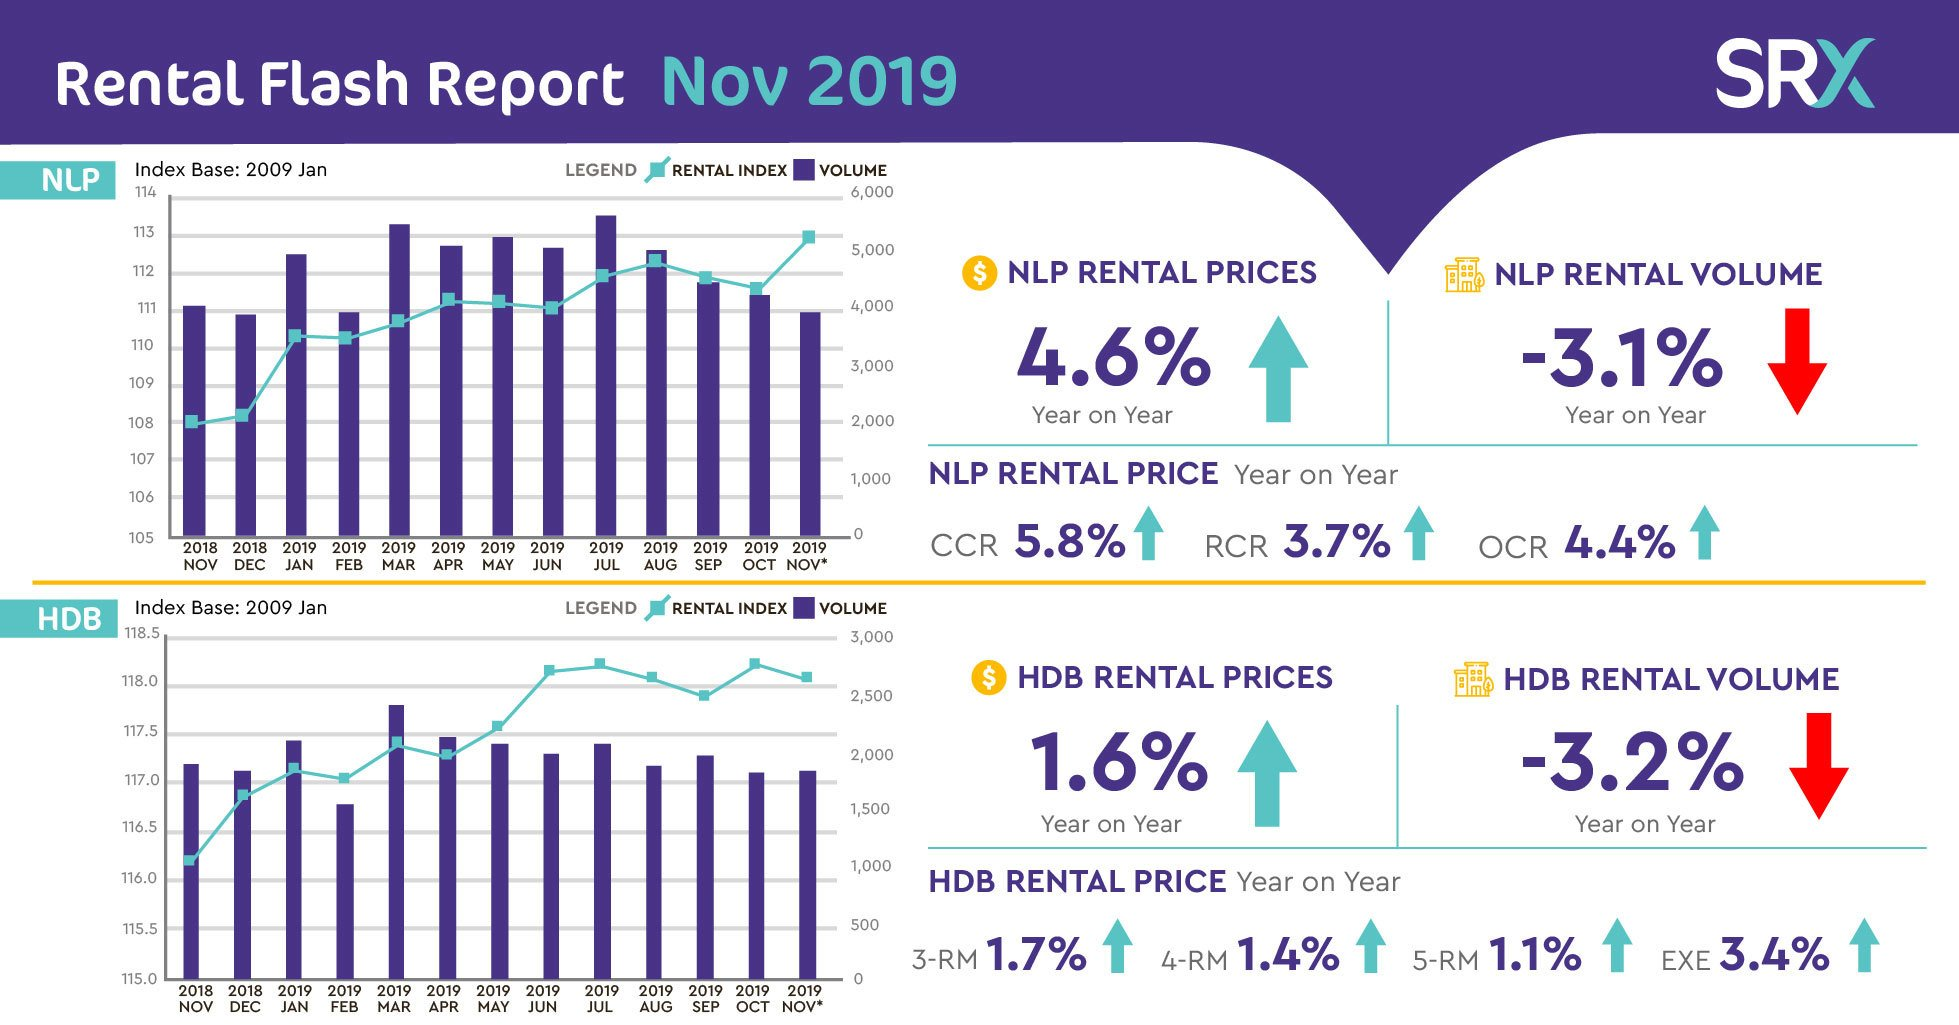 NLP Rents Increase Despite 4 Consecutive Months of Lower Volume; HDB Rents Decrease Slightly.